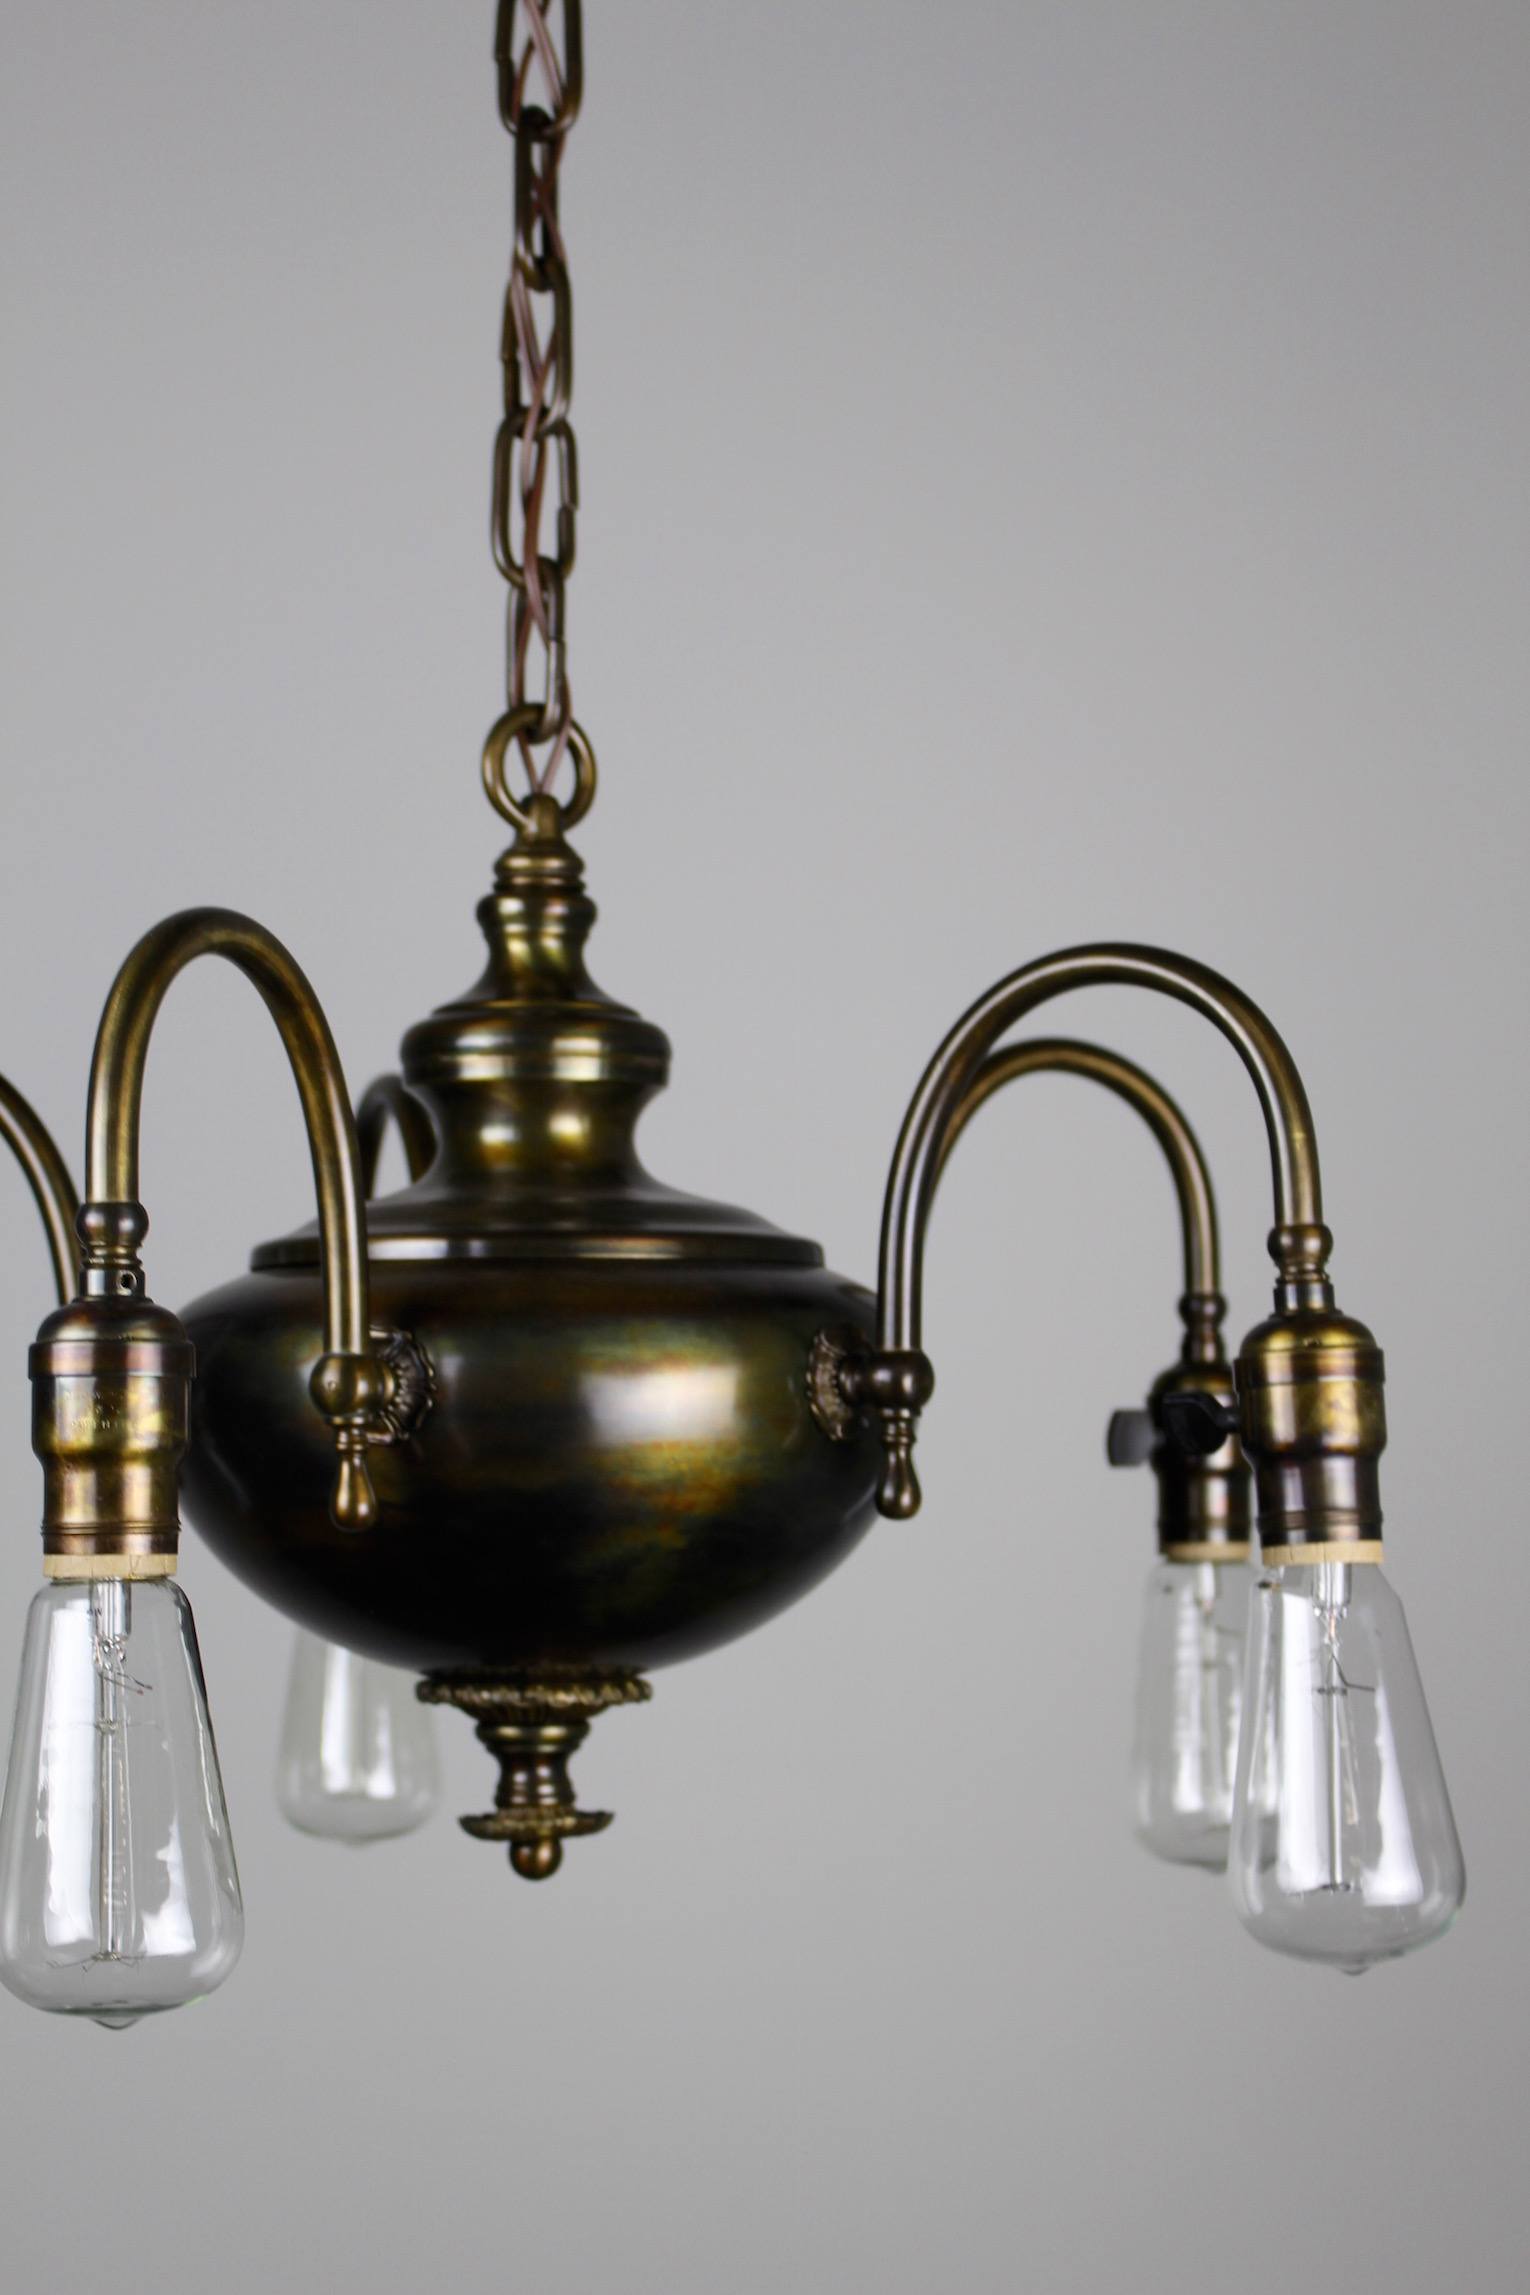 lights antique chandeliers antique lighting antique pendant fixtures